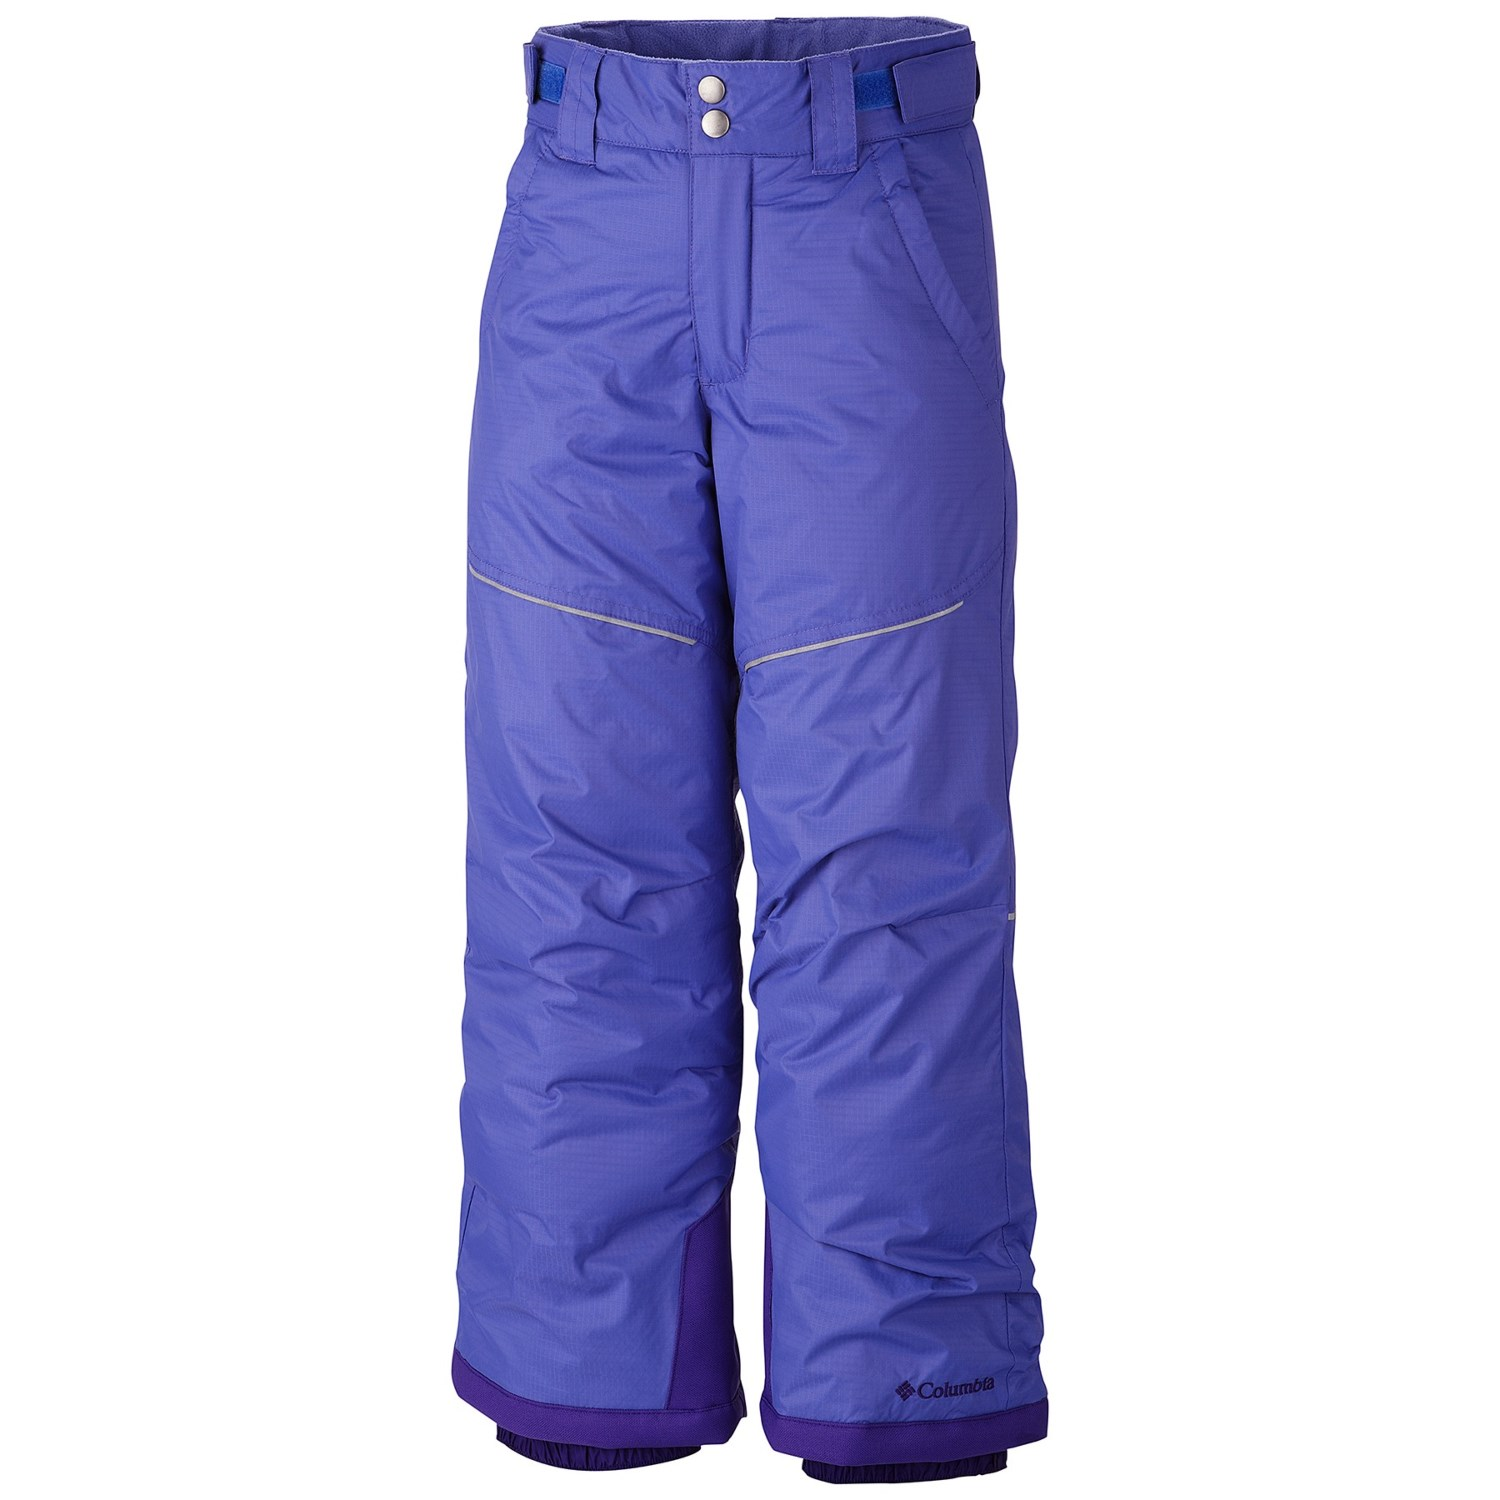 Try our Girls Squall Snow Pants at Lands' End. Everything we sell is Guaranteed. Period.® Since